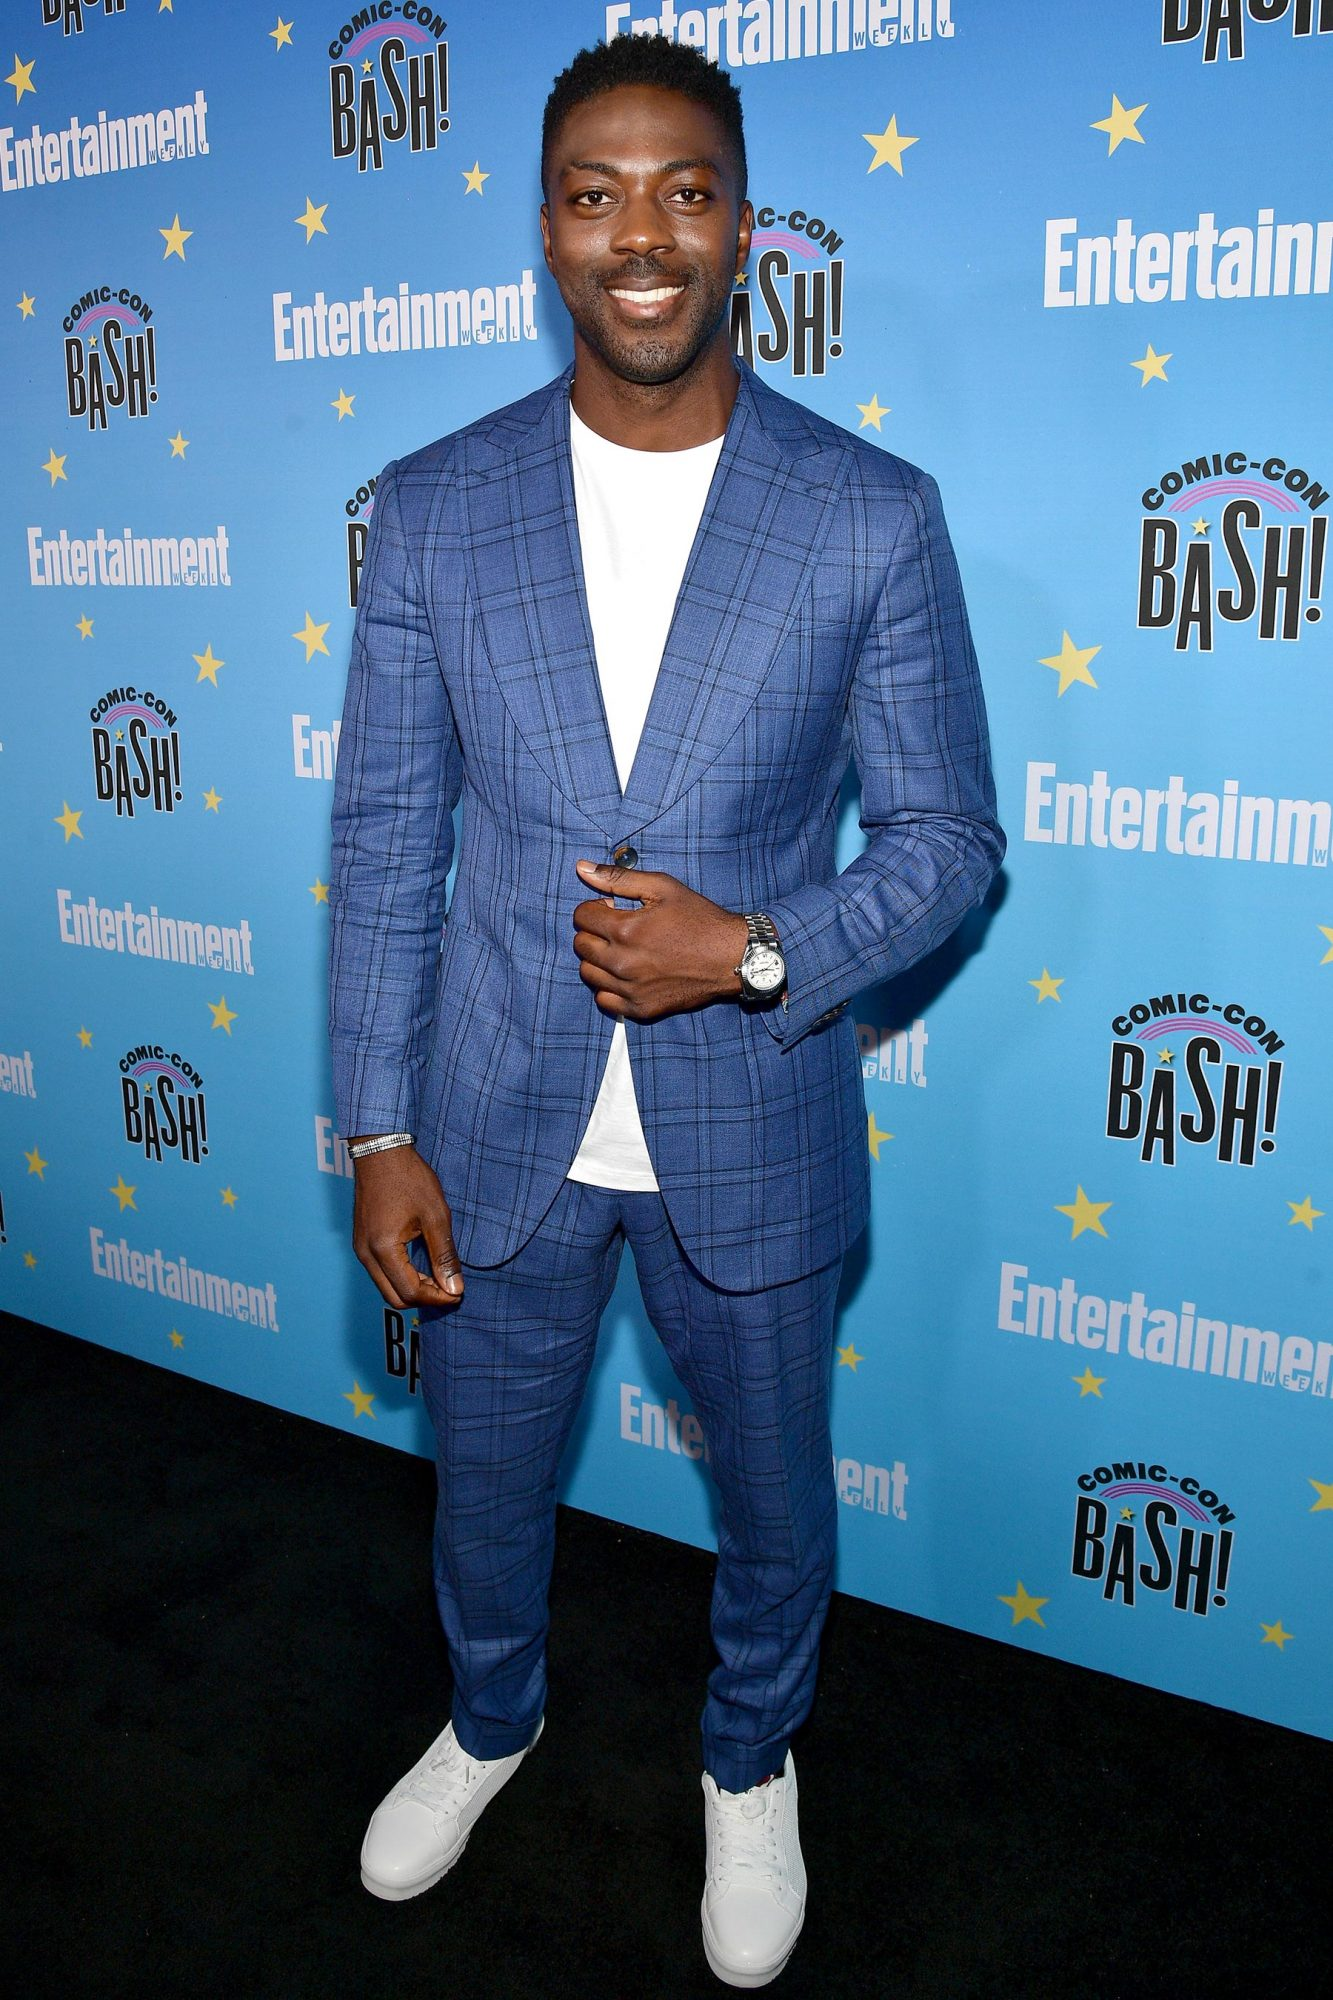 Entertainment Weekly Hosts Its Annual Comic-Con Bash At FLOAT At The Hard Rock Hotel In San Diego In Celebration Of Comic-Con 2019 - Arrivals